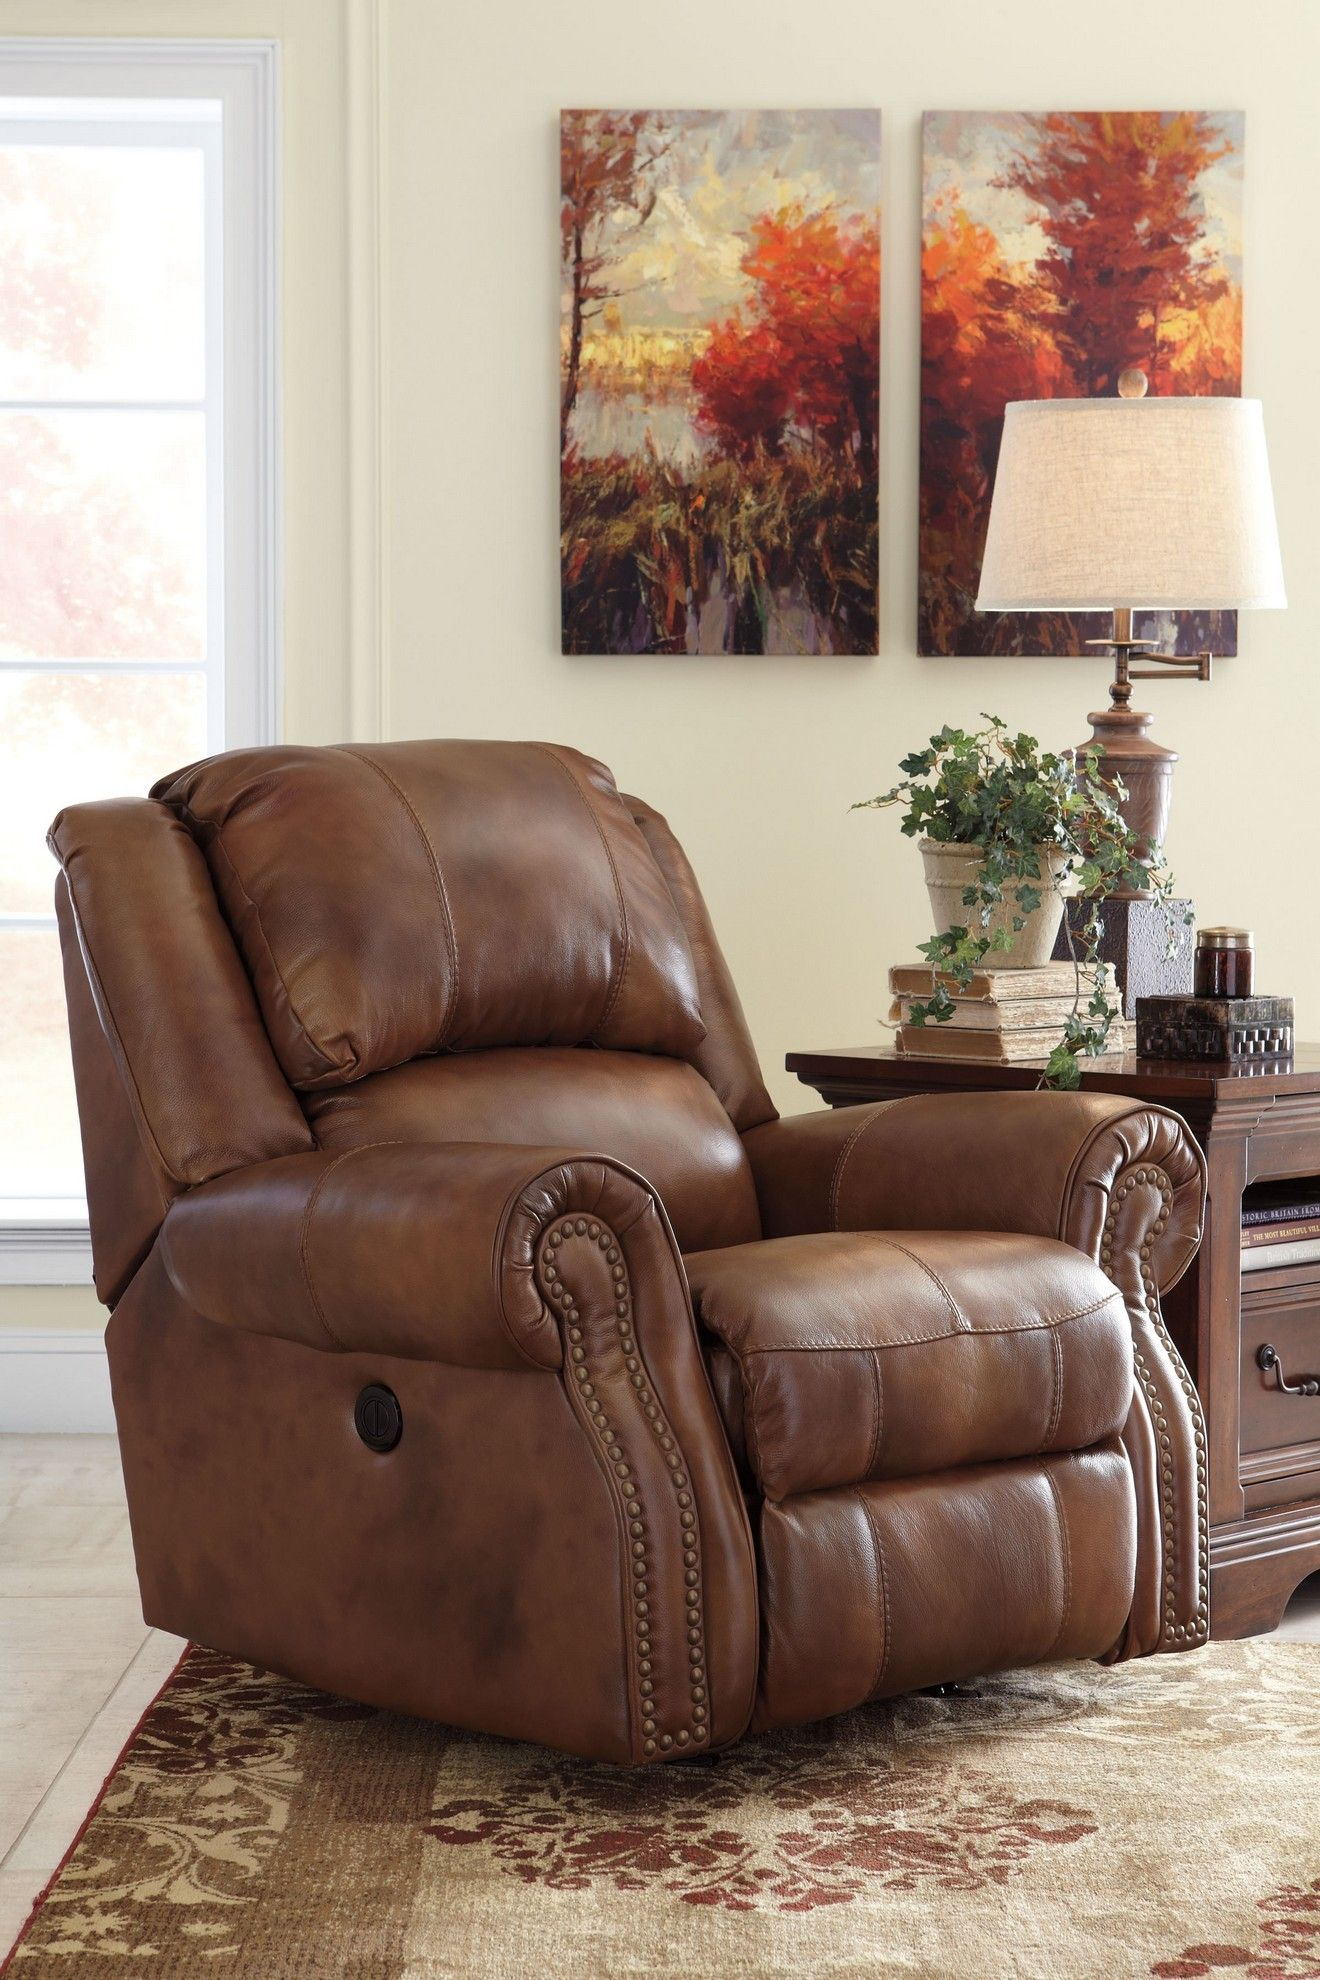 Walworth Power Recliner By Ashley Furniture At Kensington Furniture